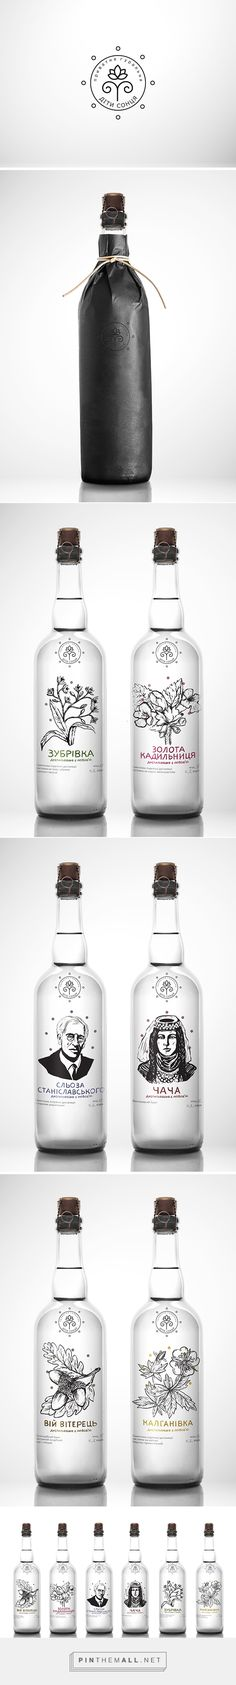 Moonshine packaging branding on Behance by Andreana Chunis curated by Packaging Diva PD. Love this illustrated bottle design for Moonshine : )